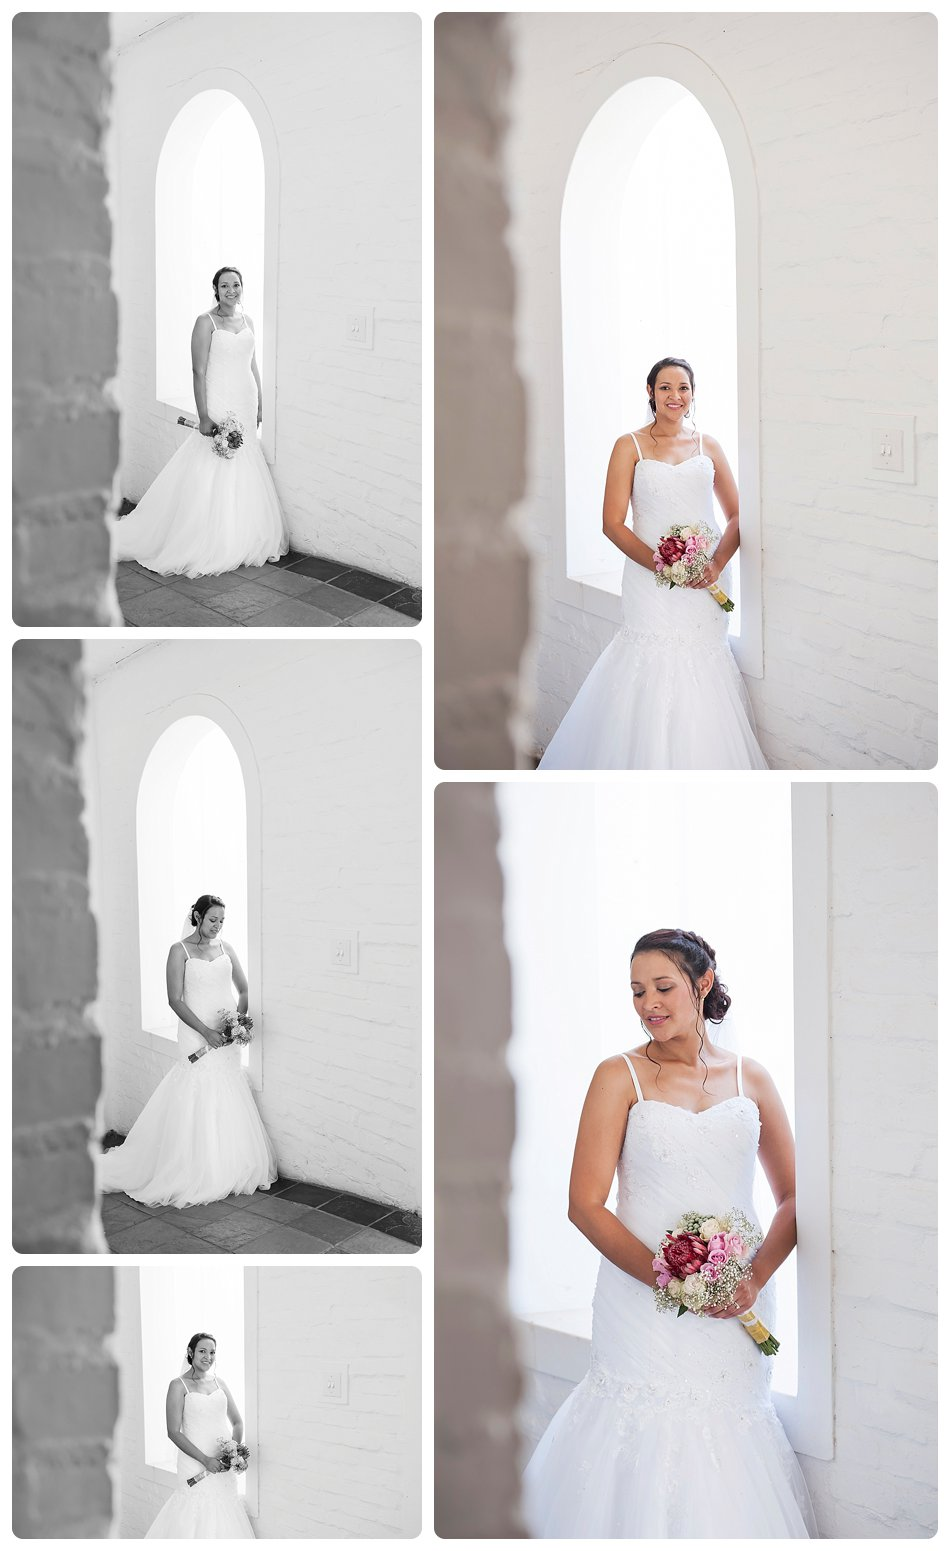 wedding-photographer-cae-town-joanne-markland-nelsons-estate-paarl-0019